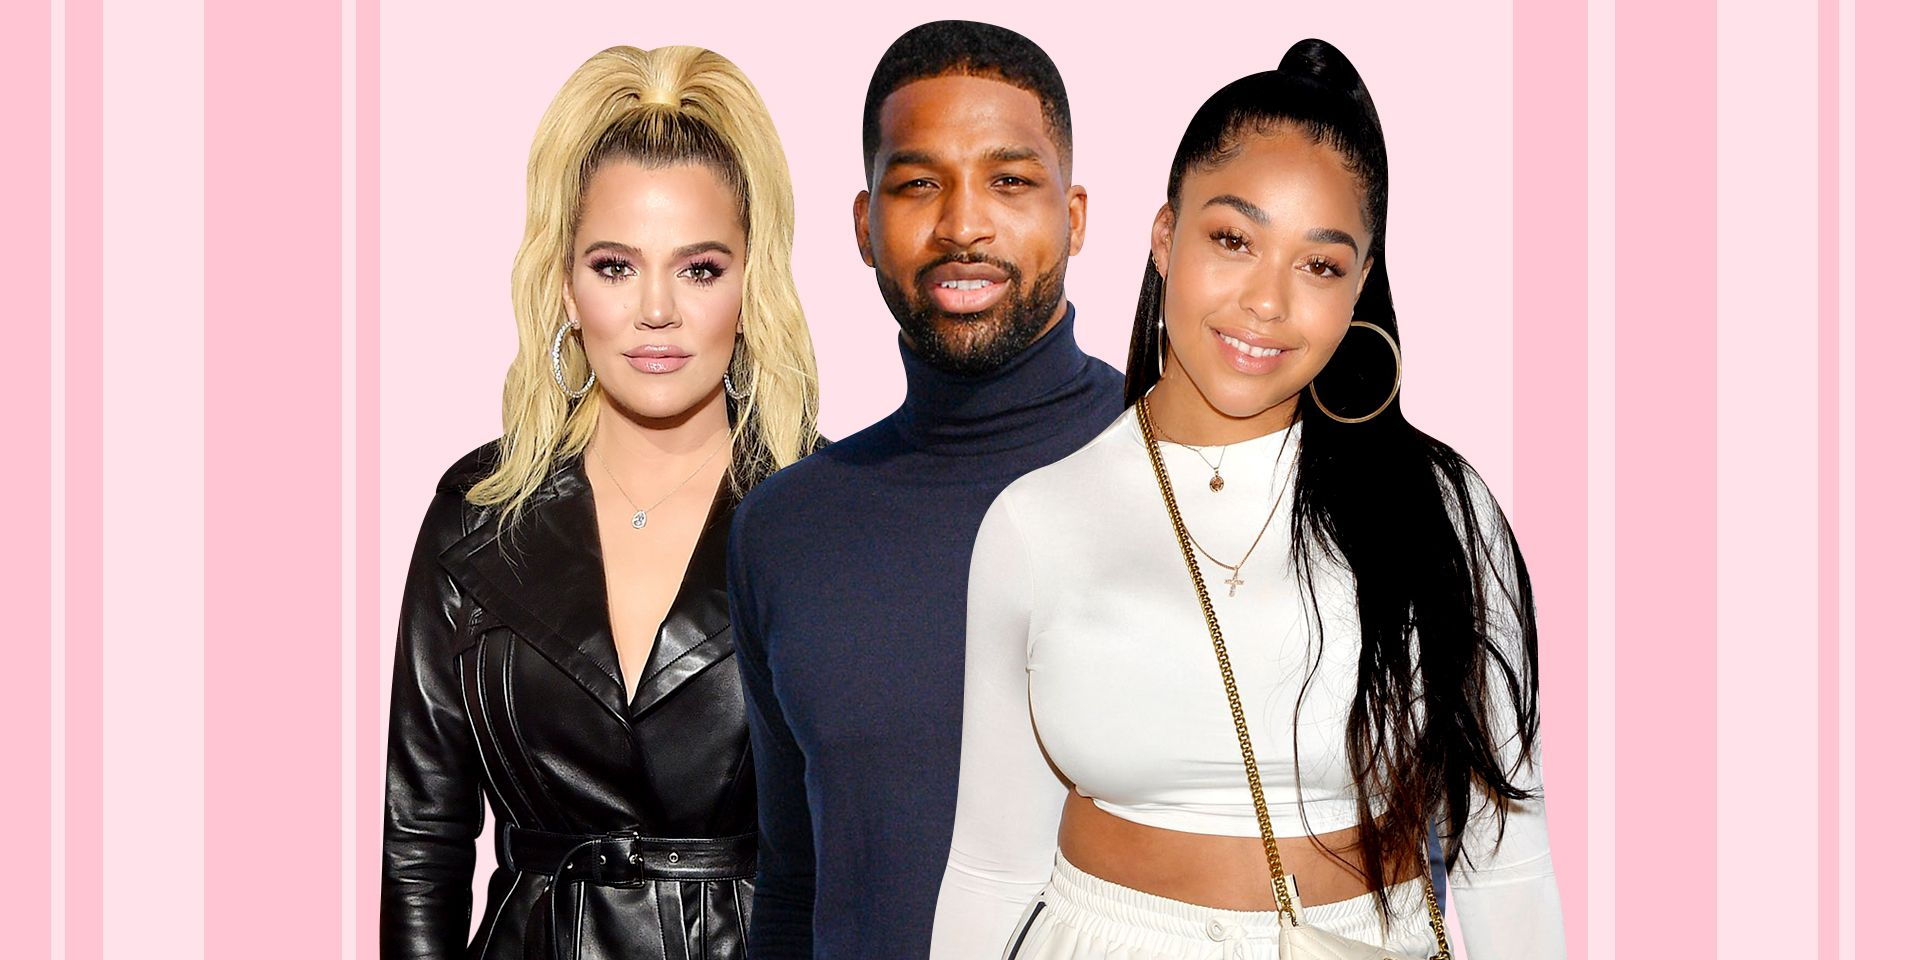 Tristan Thompson and Jordyn Woods' Cheating Scandal and Everything That Went Down